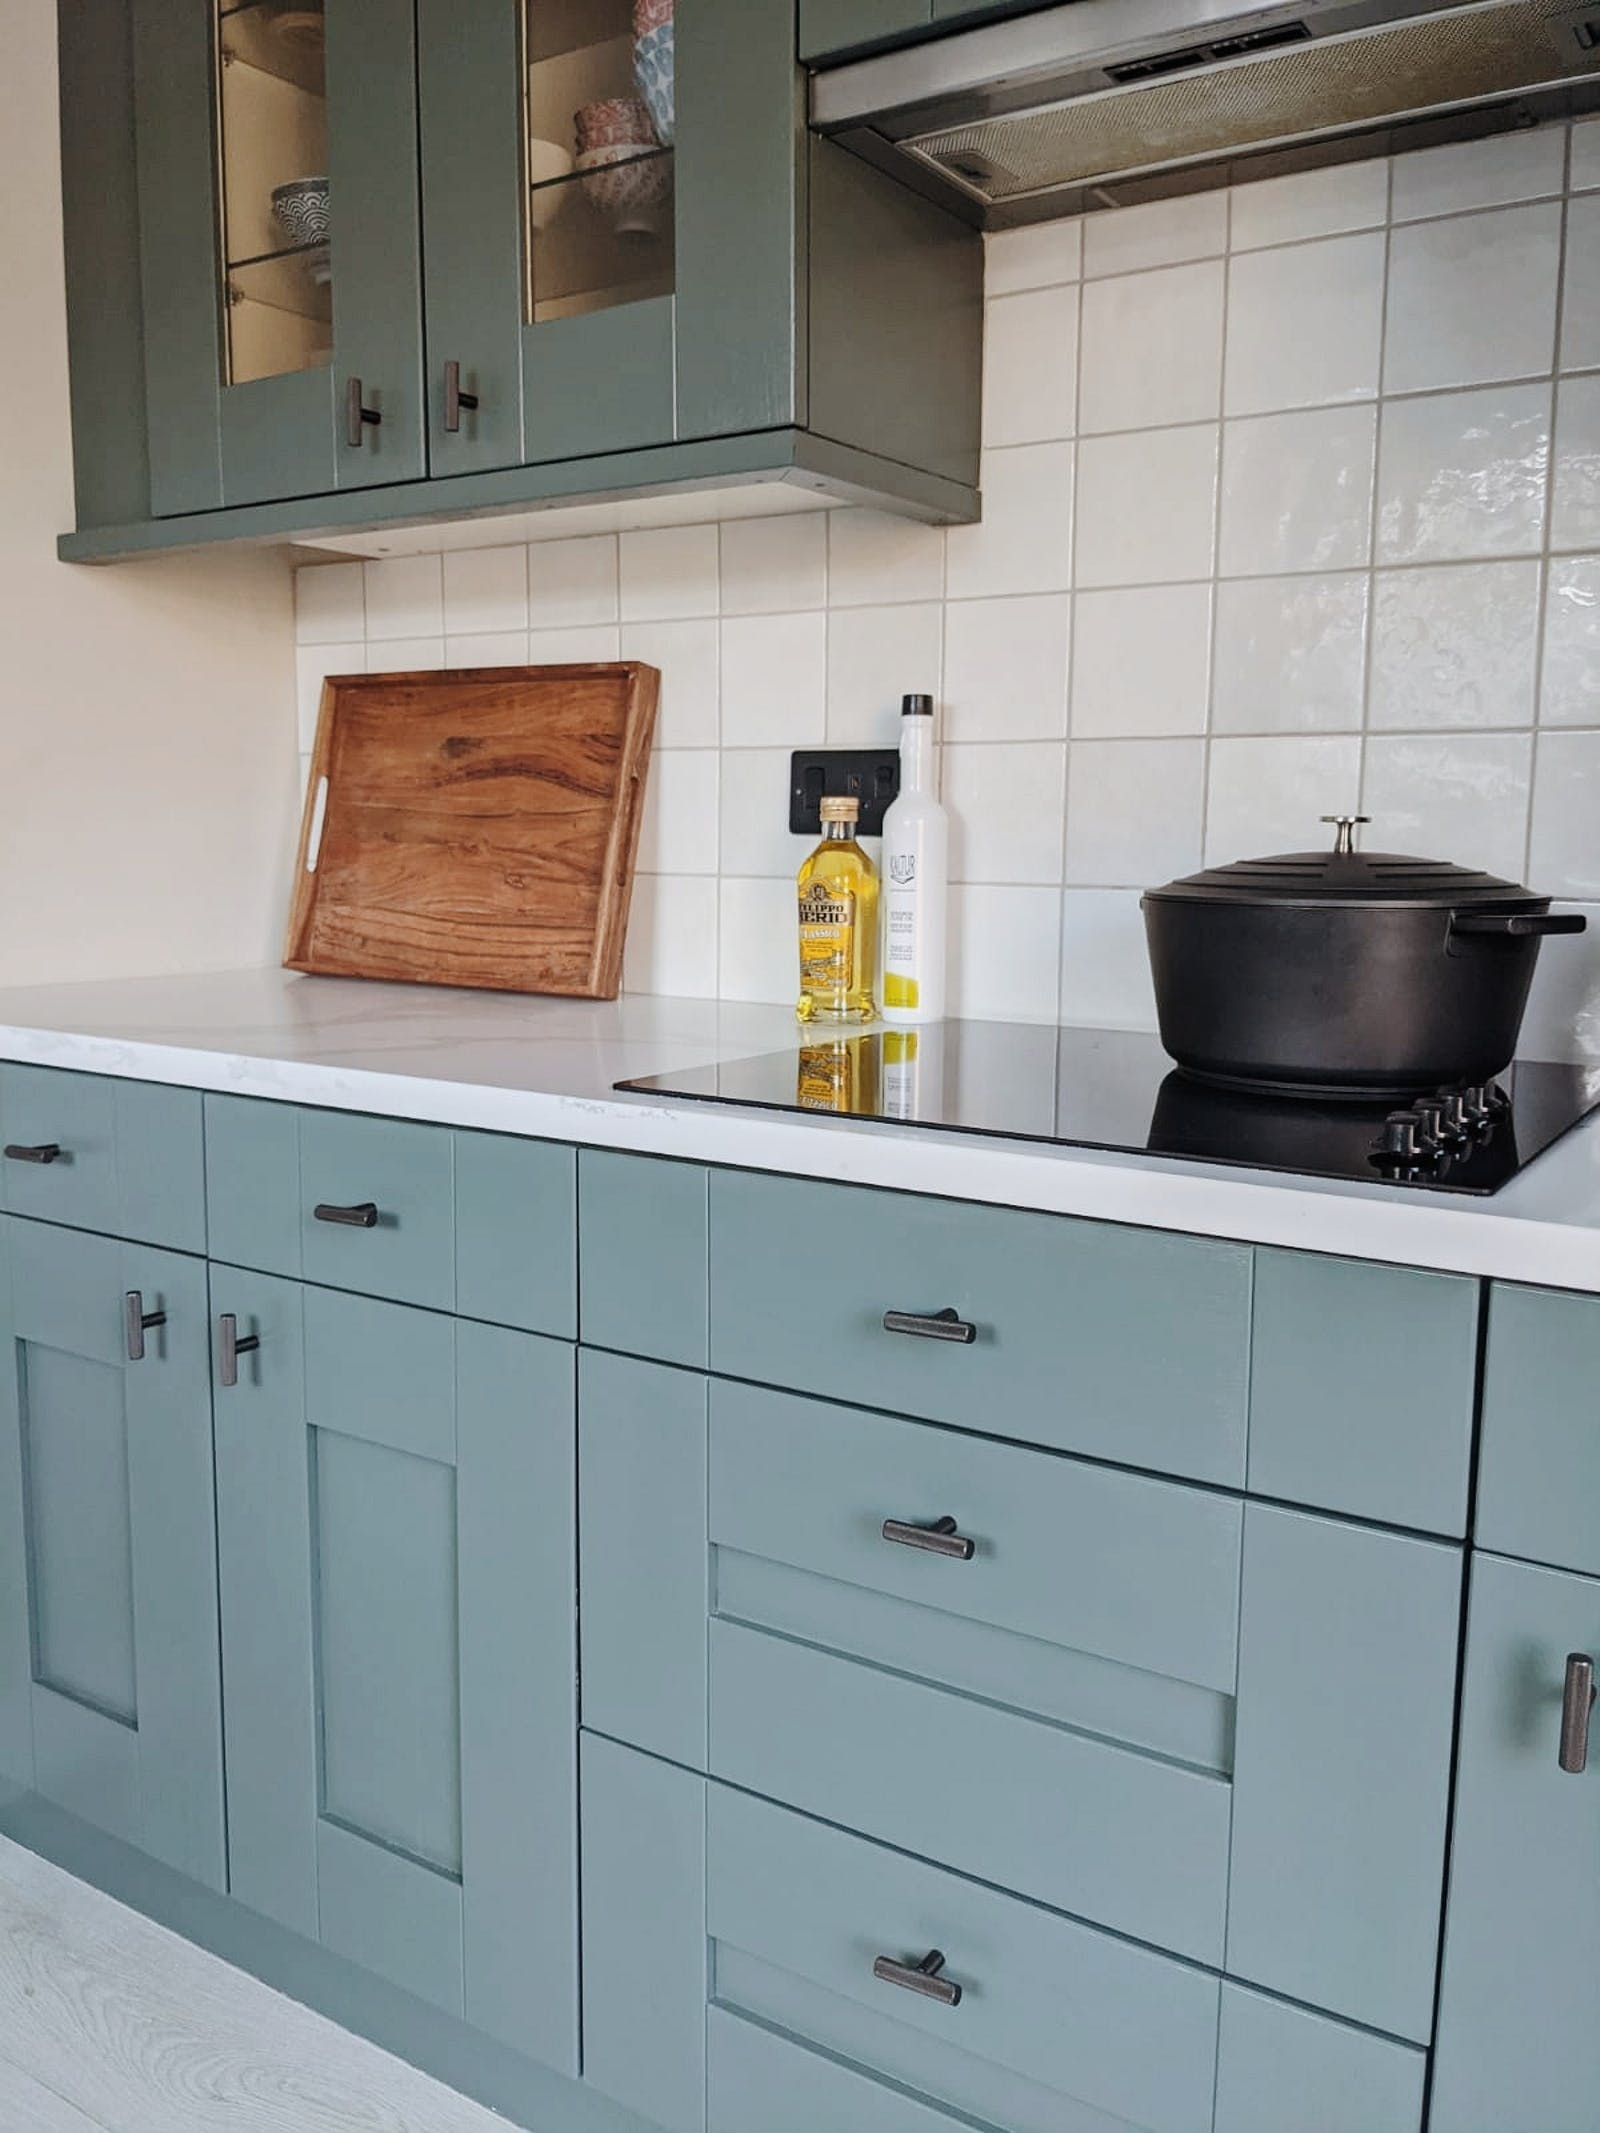 Close up of kitchen cupboards painted in Lick Green 03